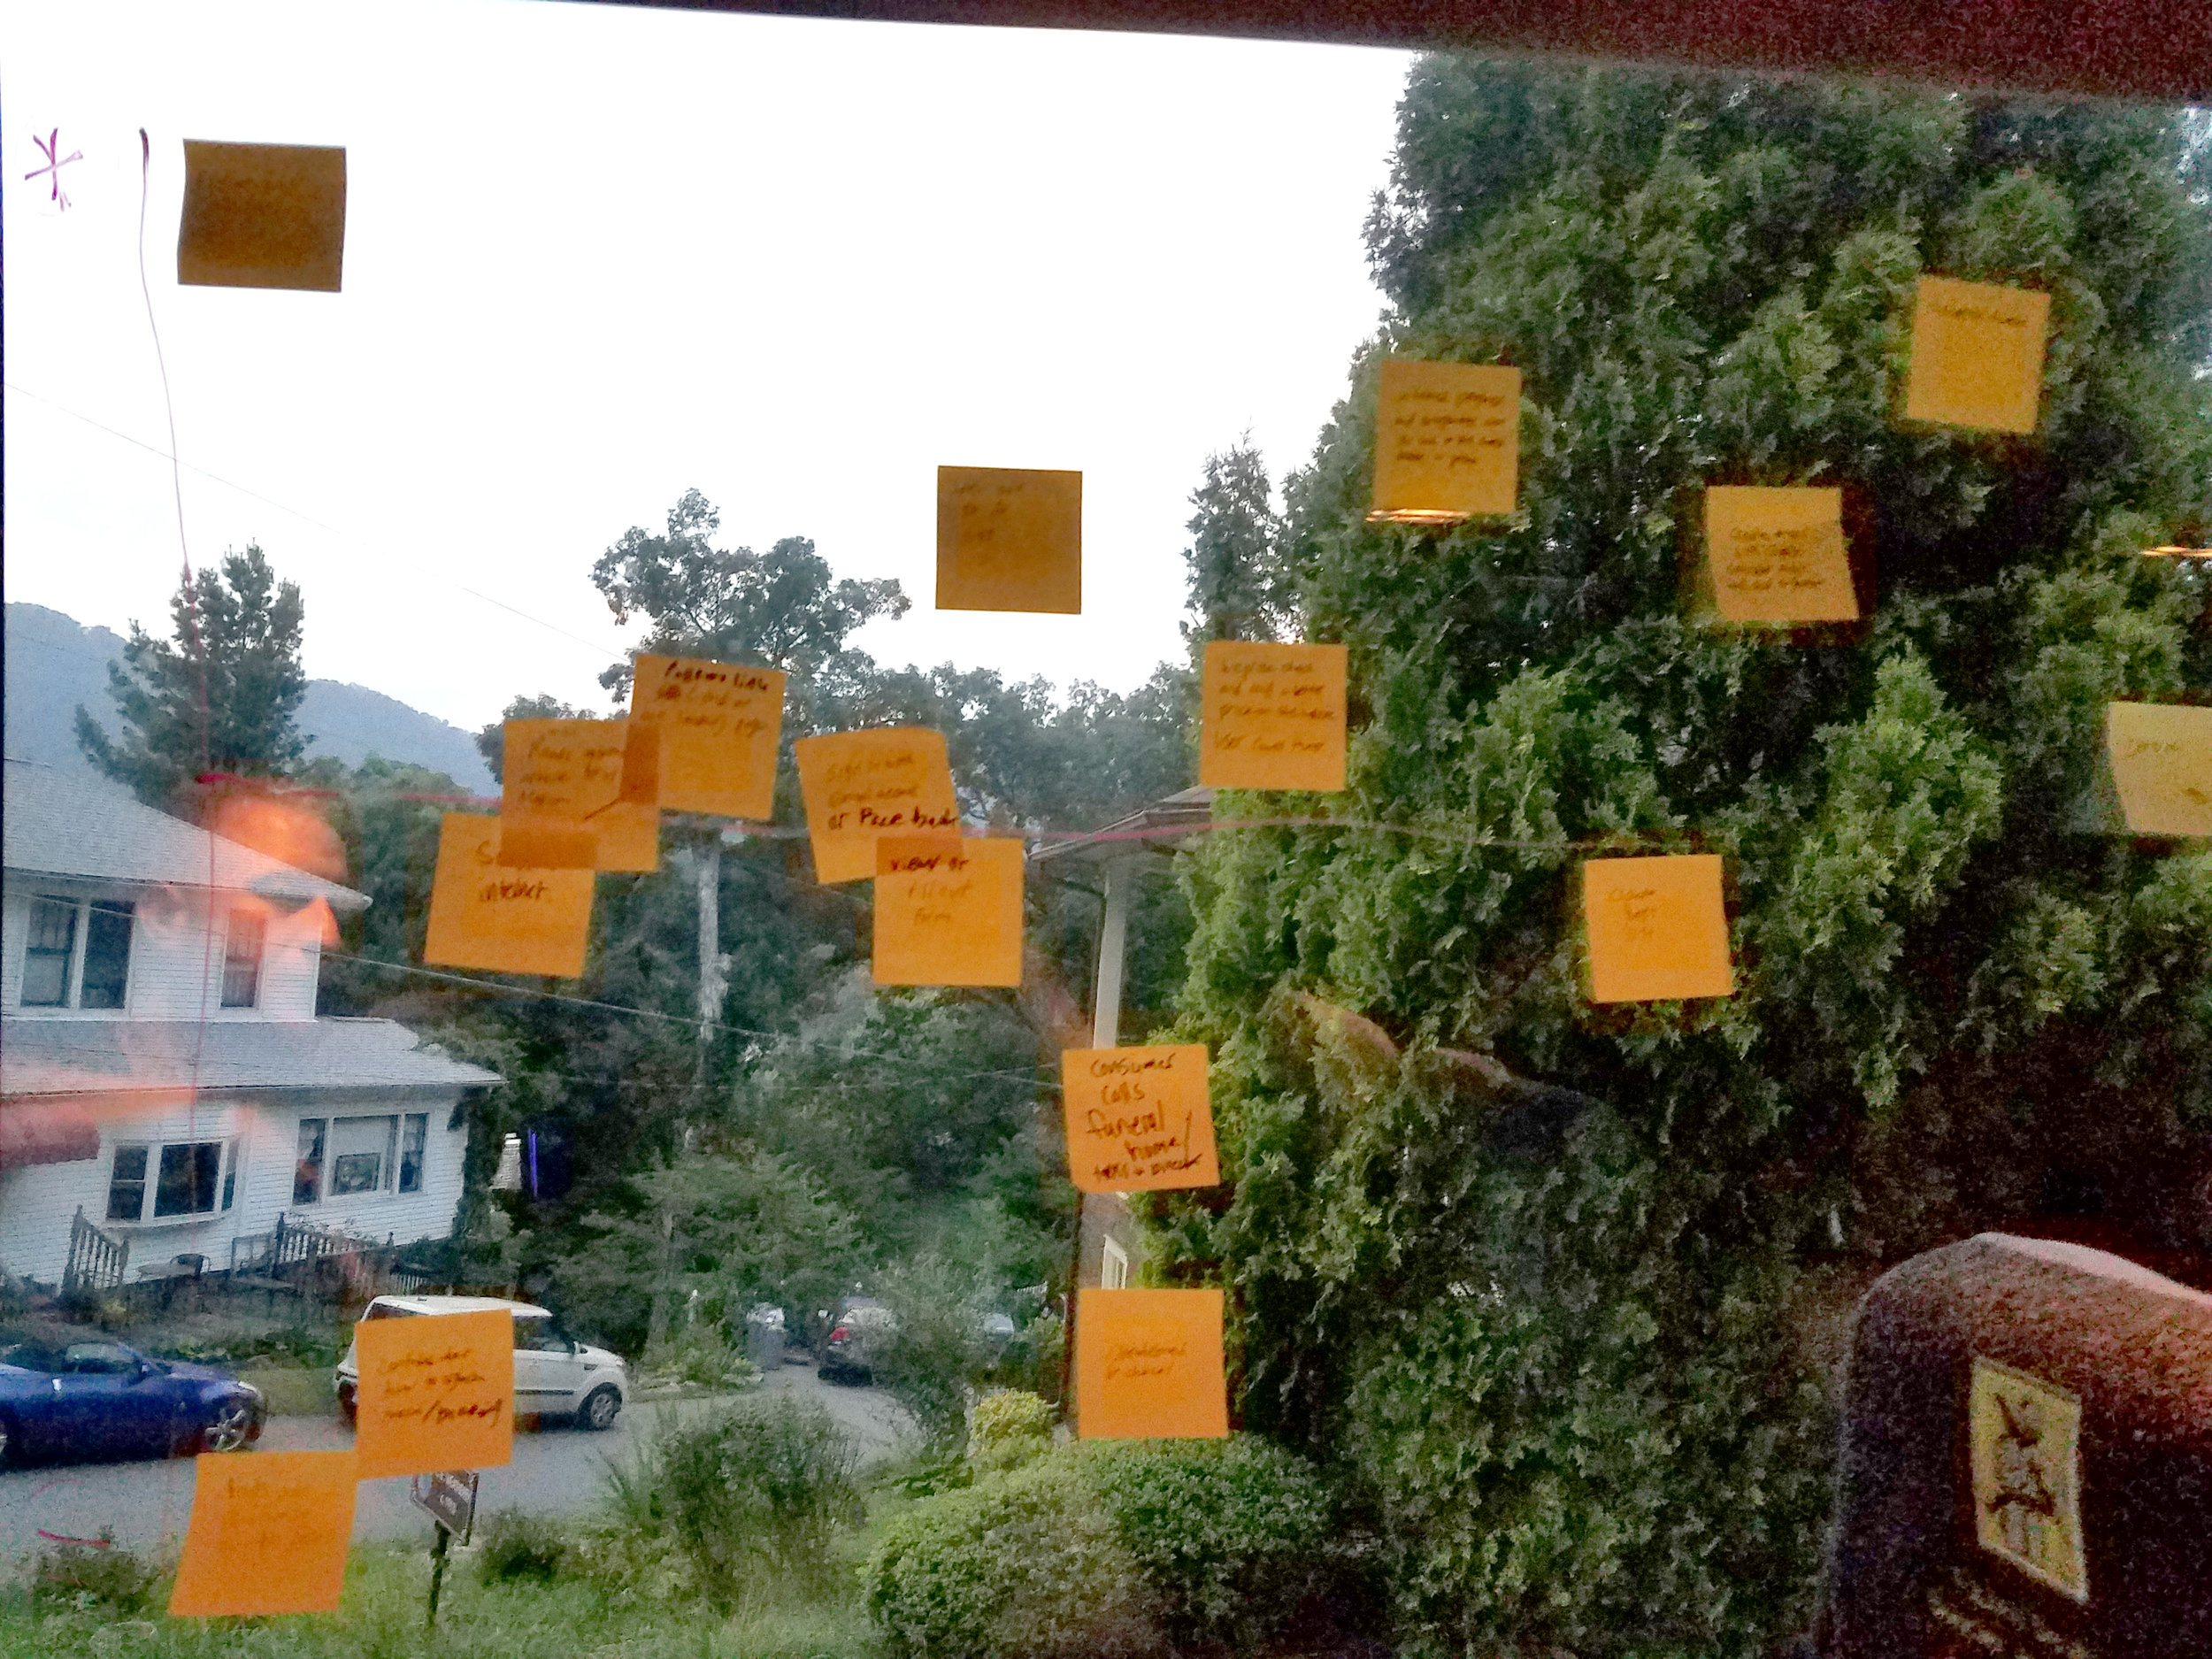 We started building our experience map with stickynotes on the bus window